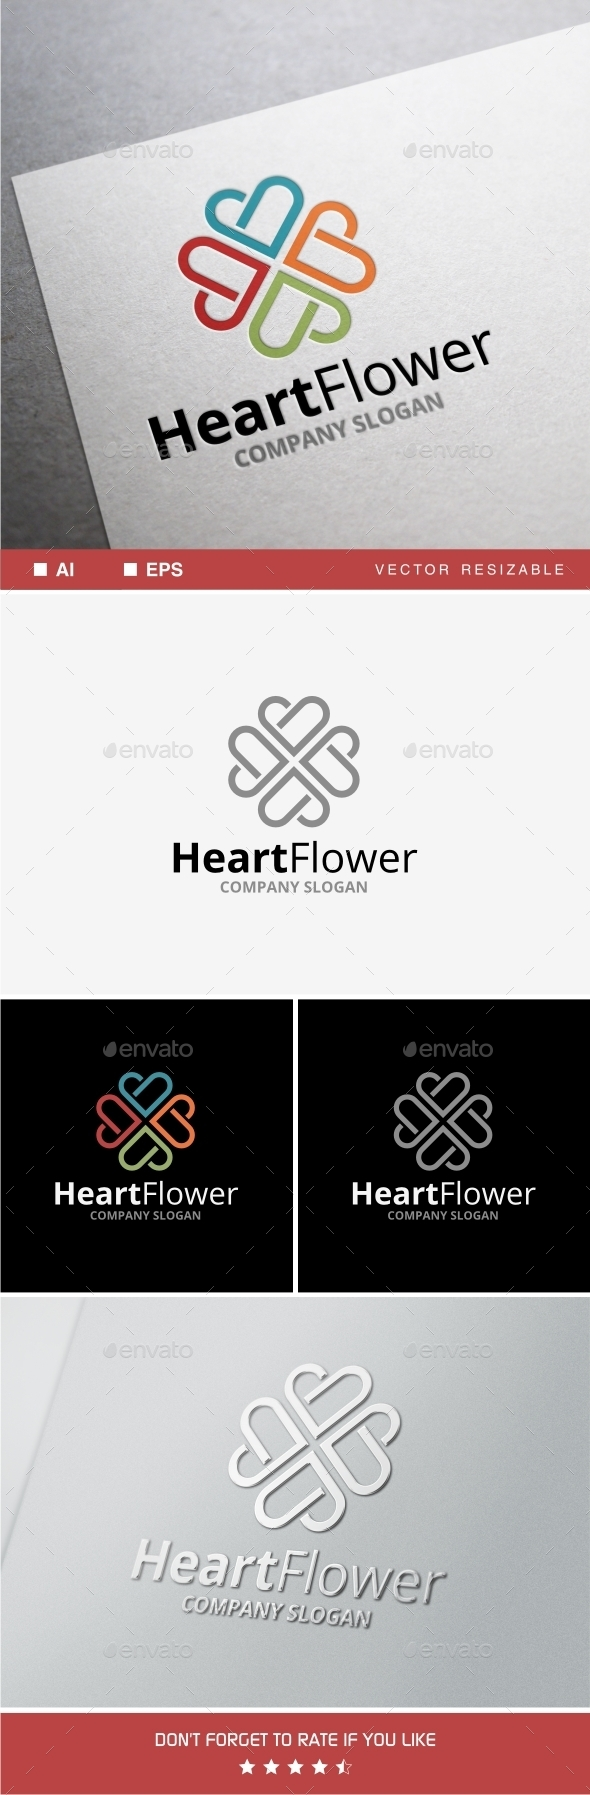 GraphicRiver Heart Flower 10415896